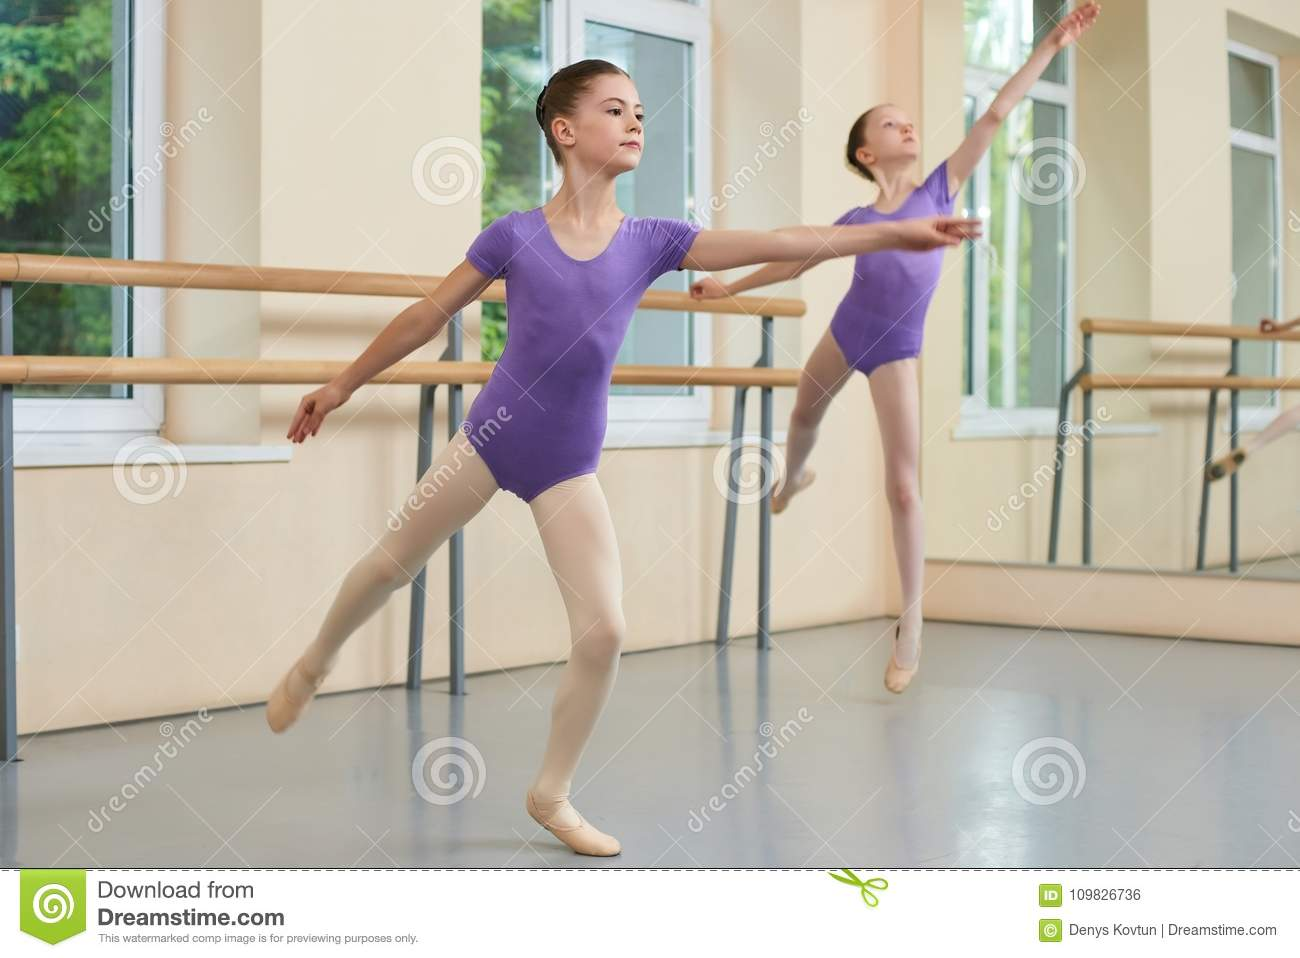 bb869542859b Cute Ballet Girl Dancing In Studio. Stock Photo - Image of lifestyle ...